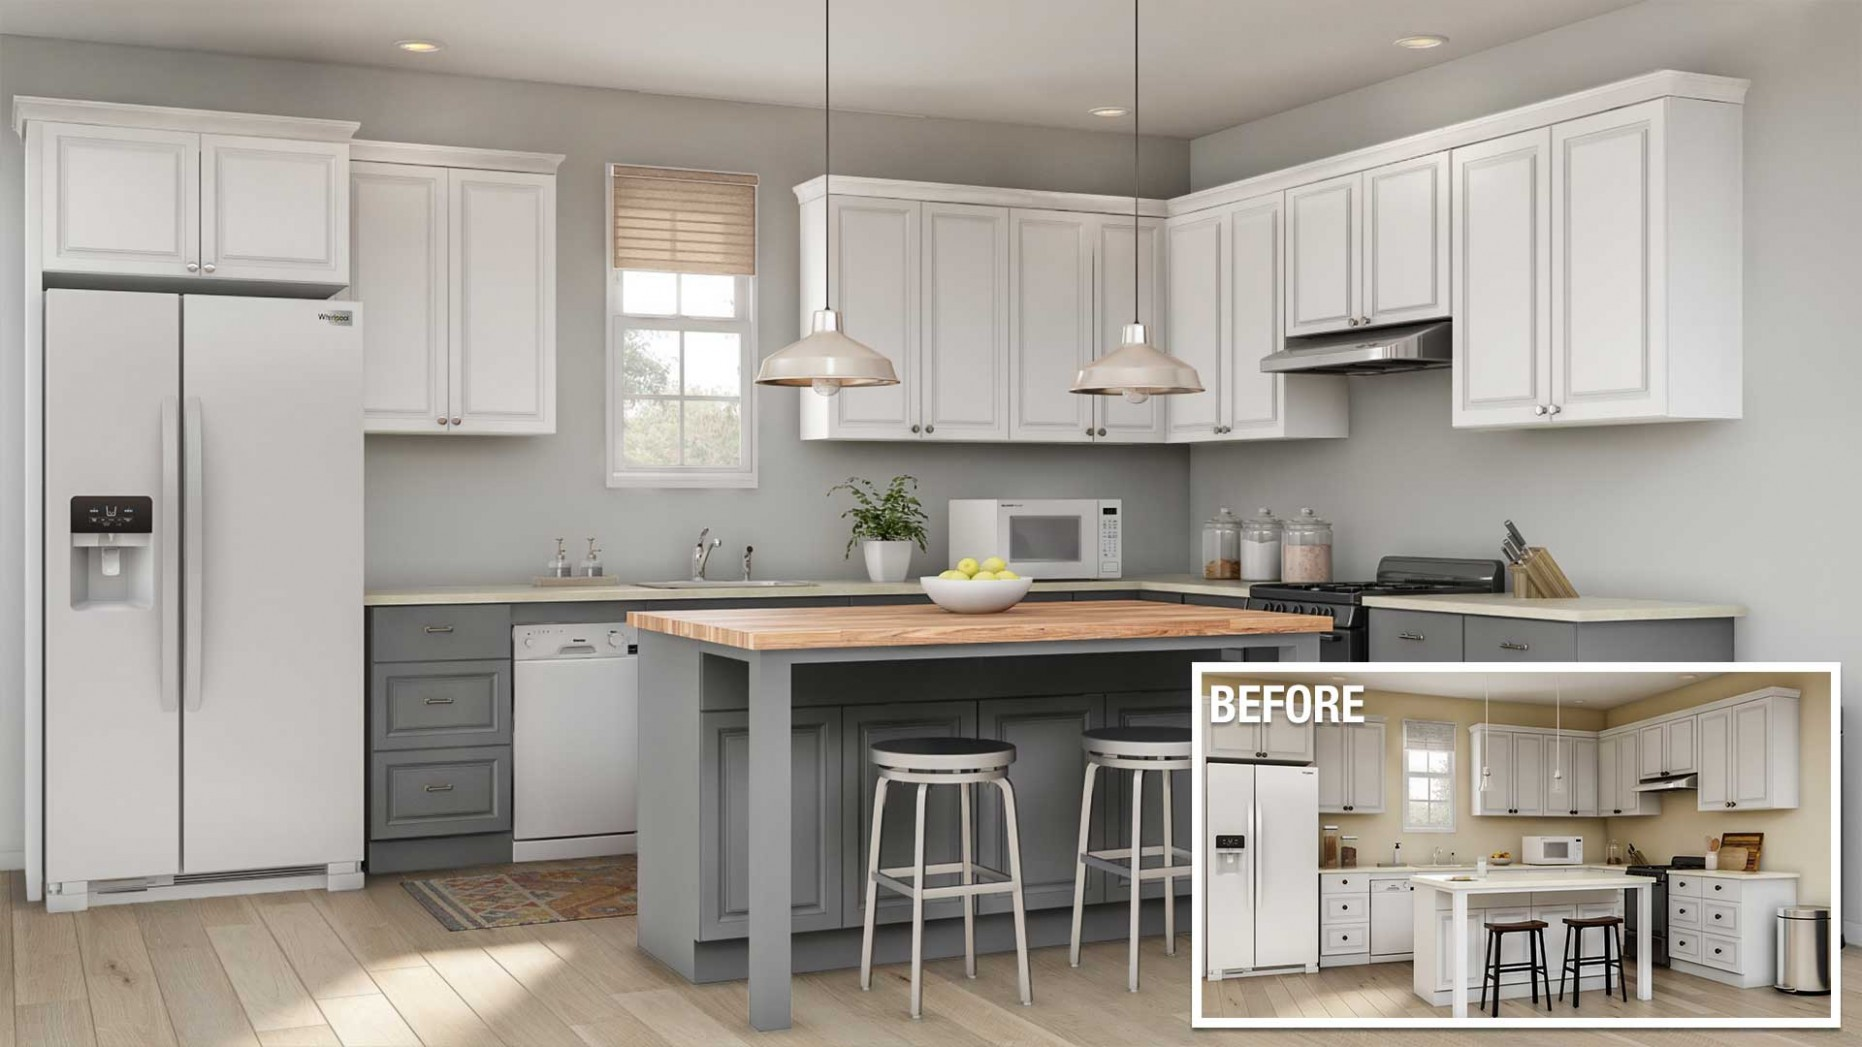 Cost to Remodel a Kitchen - The Home Depot - How Much Are Kitchen Cabinets Per Foot